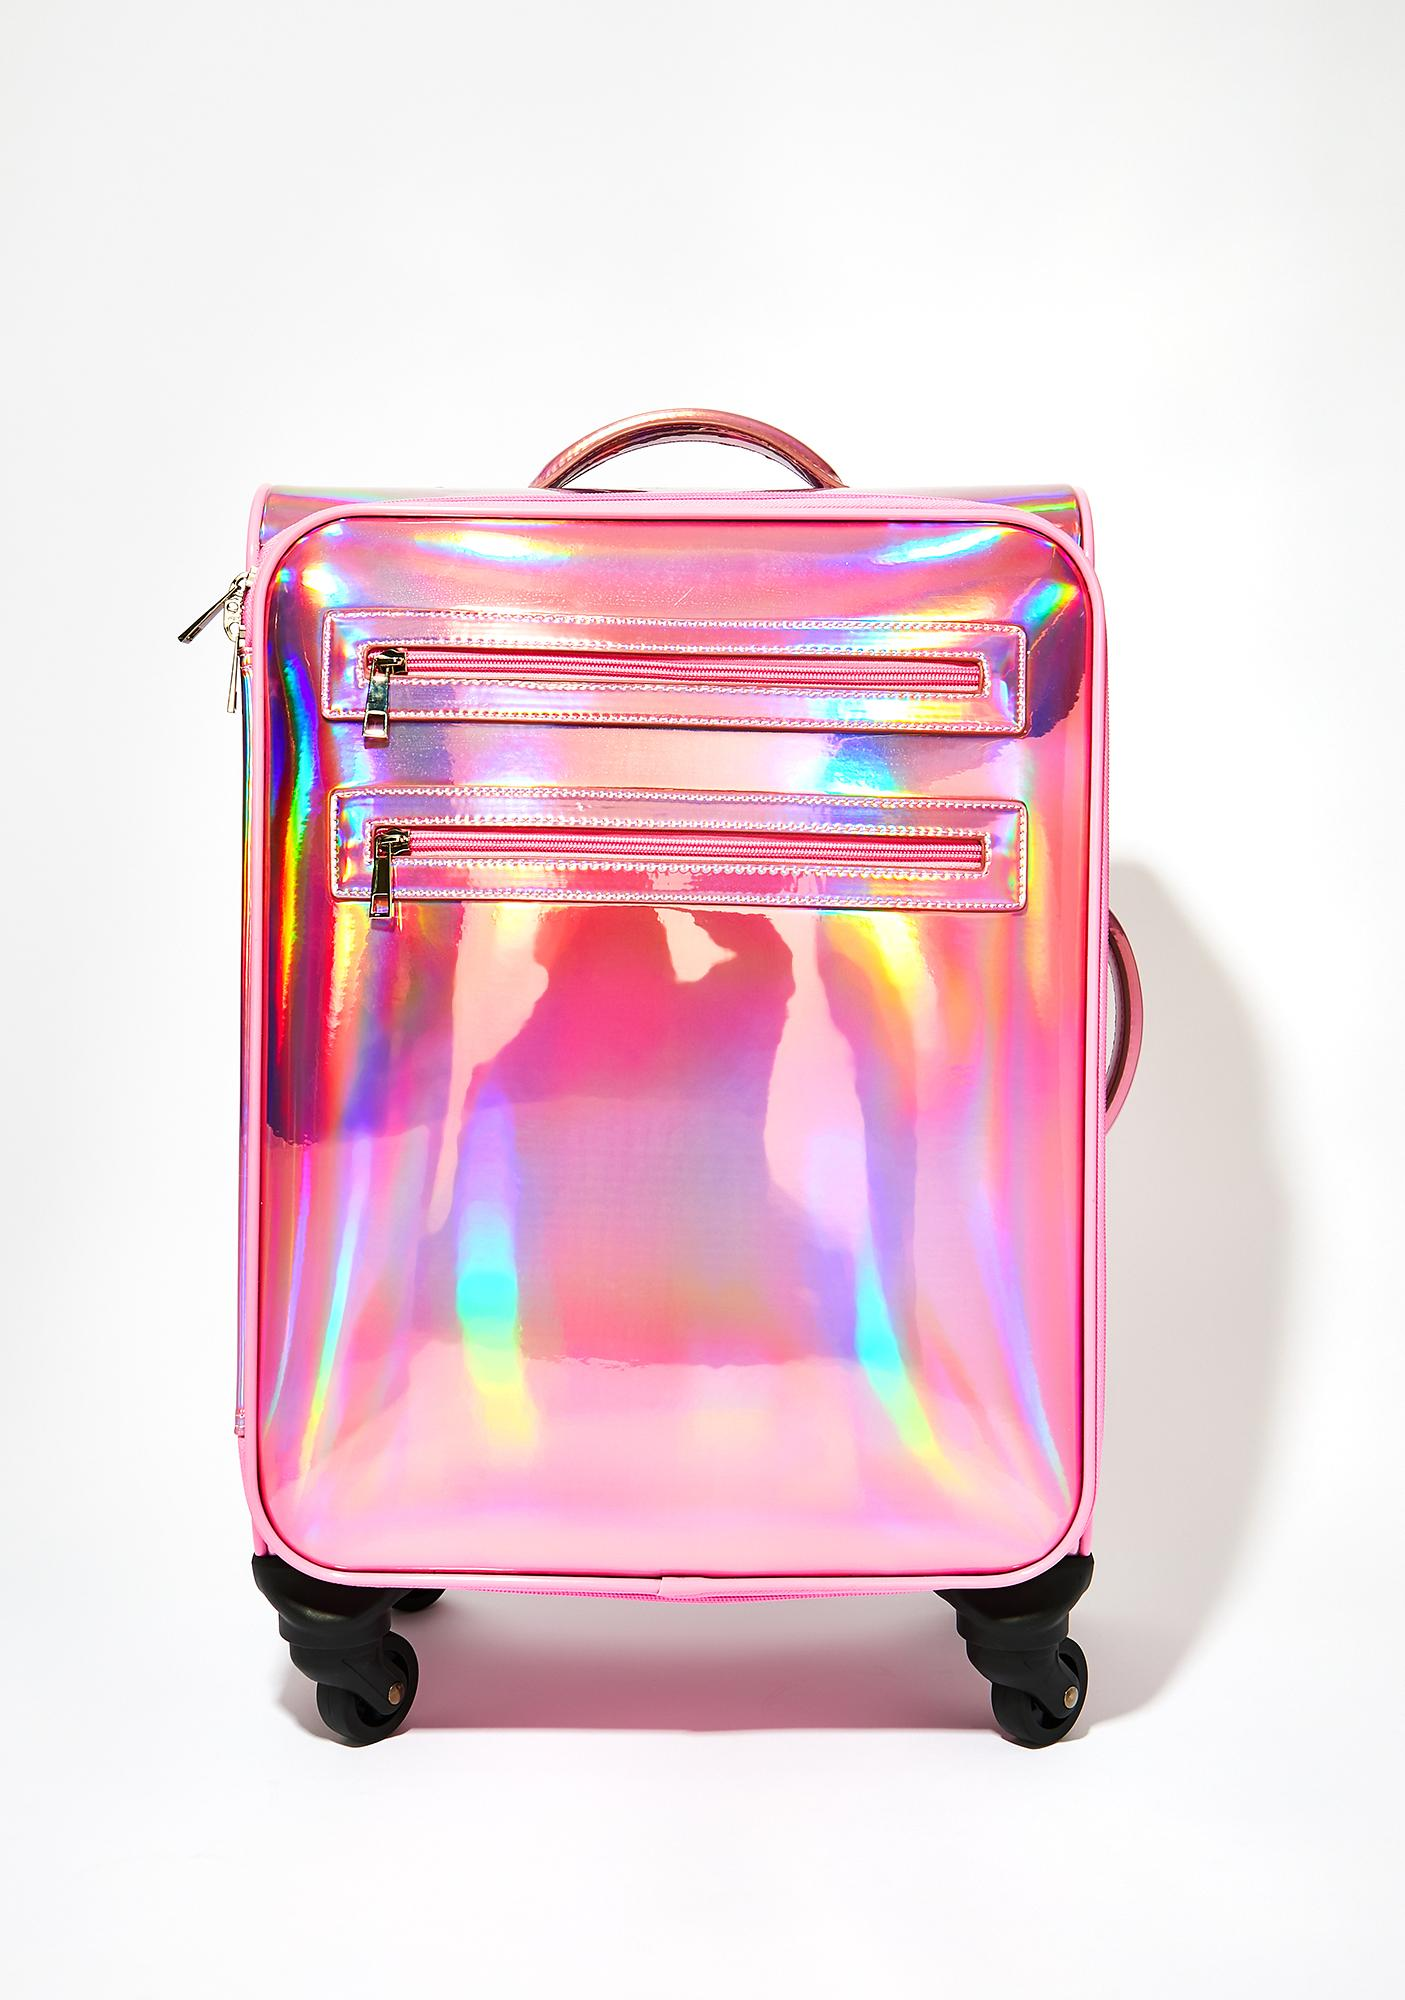 Sugar Thrillz Shagadelic Suitcase